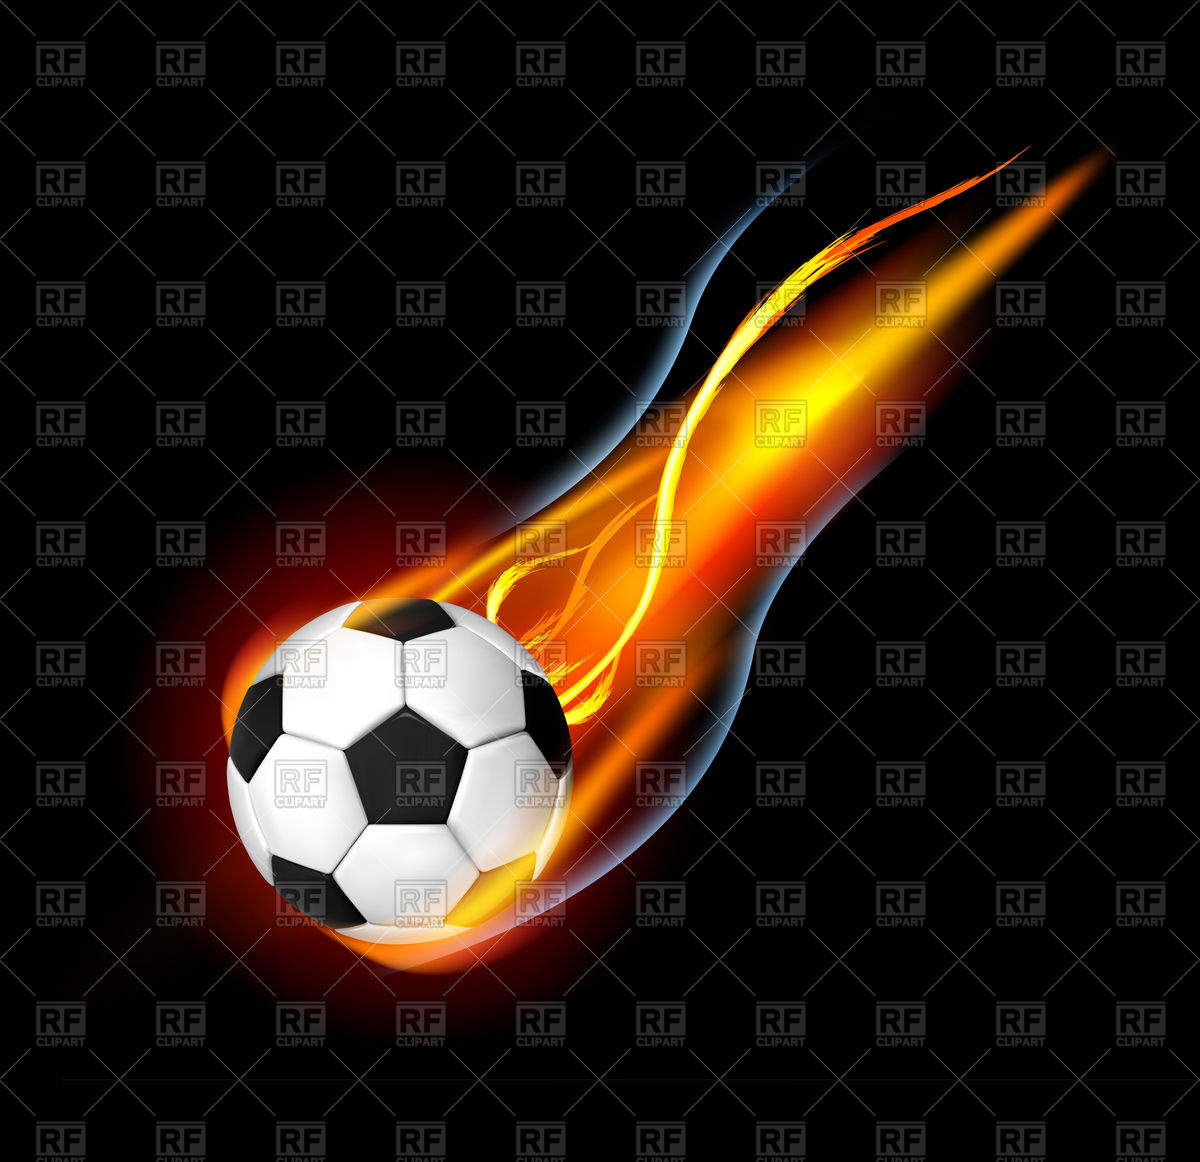 Flaming soccer ball clipart clipart library stock Soccer ball clipart eps - ClipartFest clipart library stock